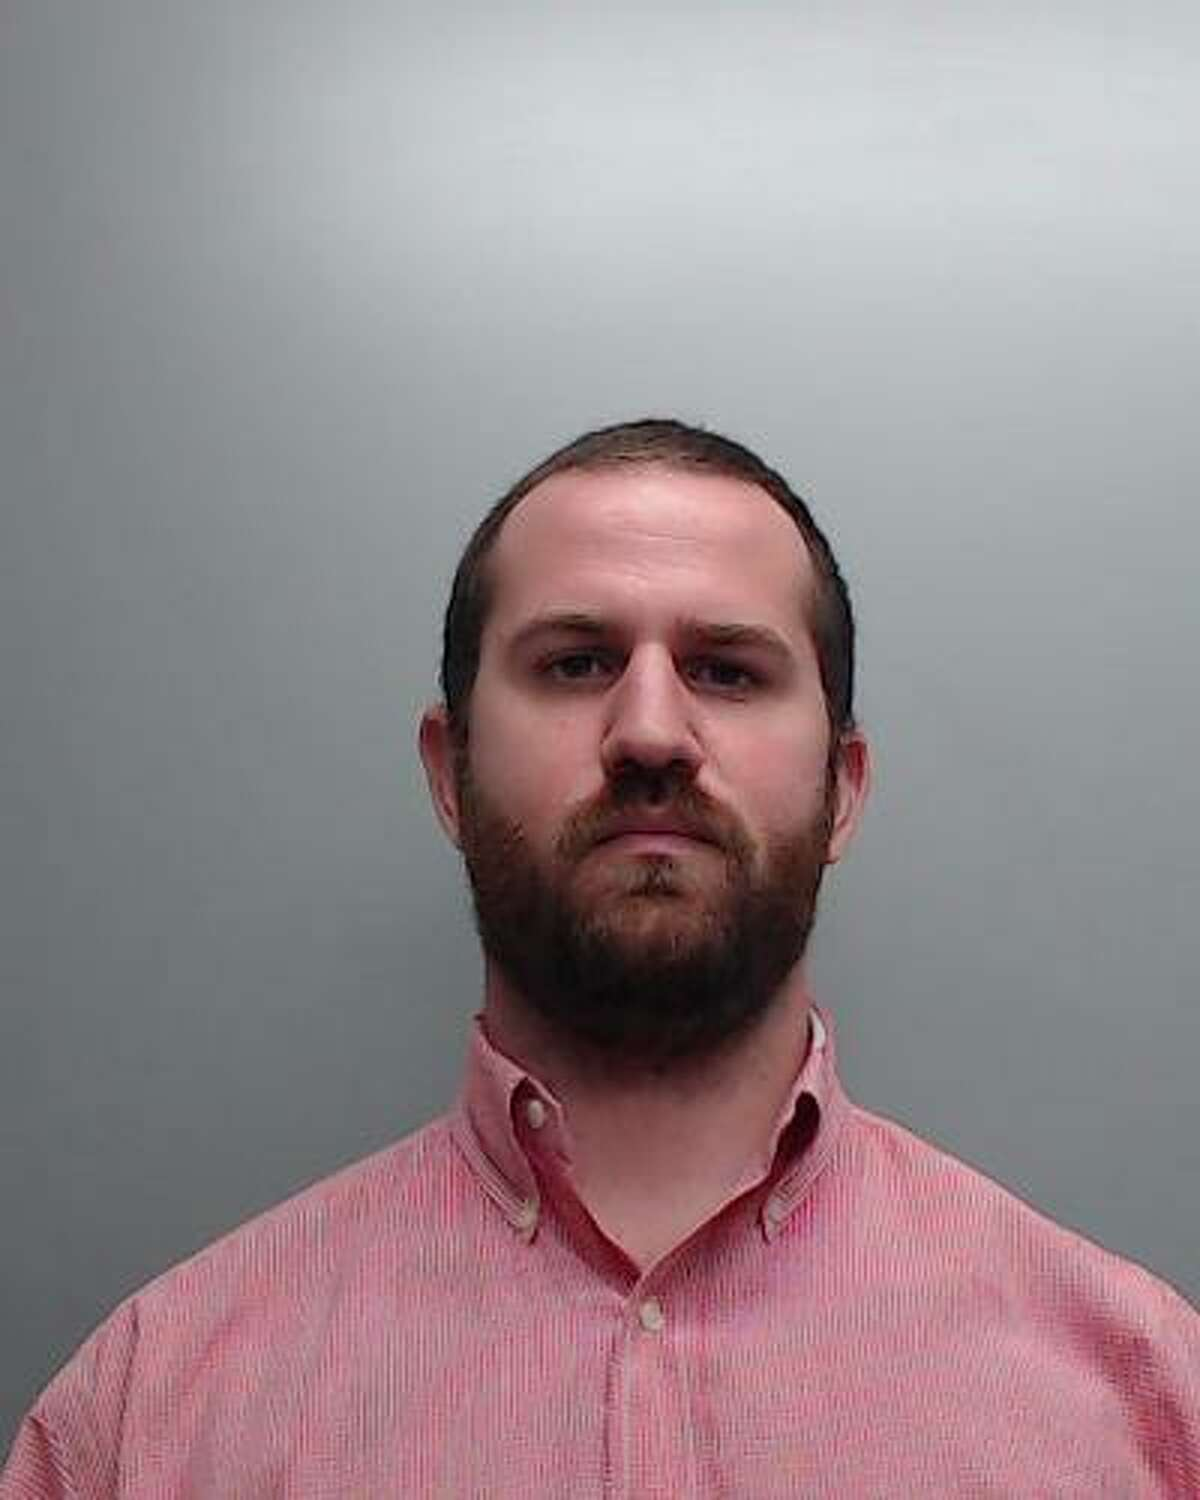 Kyle Nissen, 30, was charged with ntoxication manslaughter with a vehicle, intoxication assault with a vehicle causing serious bodily injury and unlawful carrying of a weapon in connection with a fatal accident.